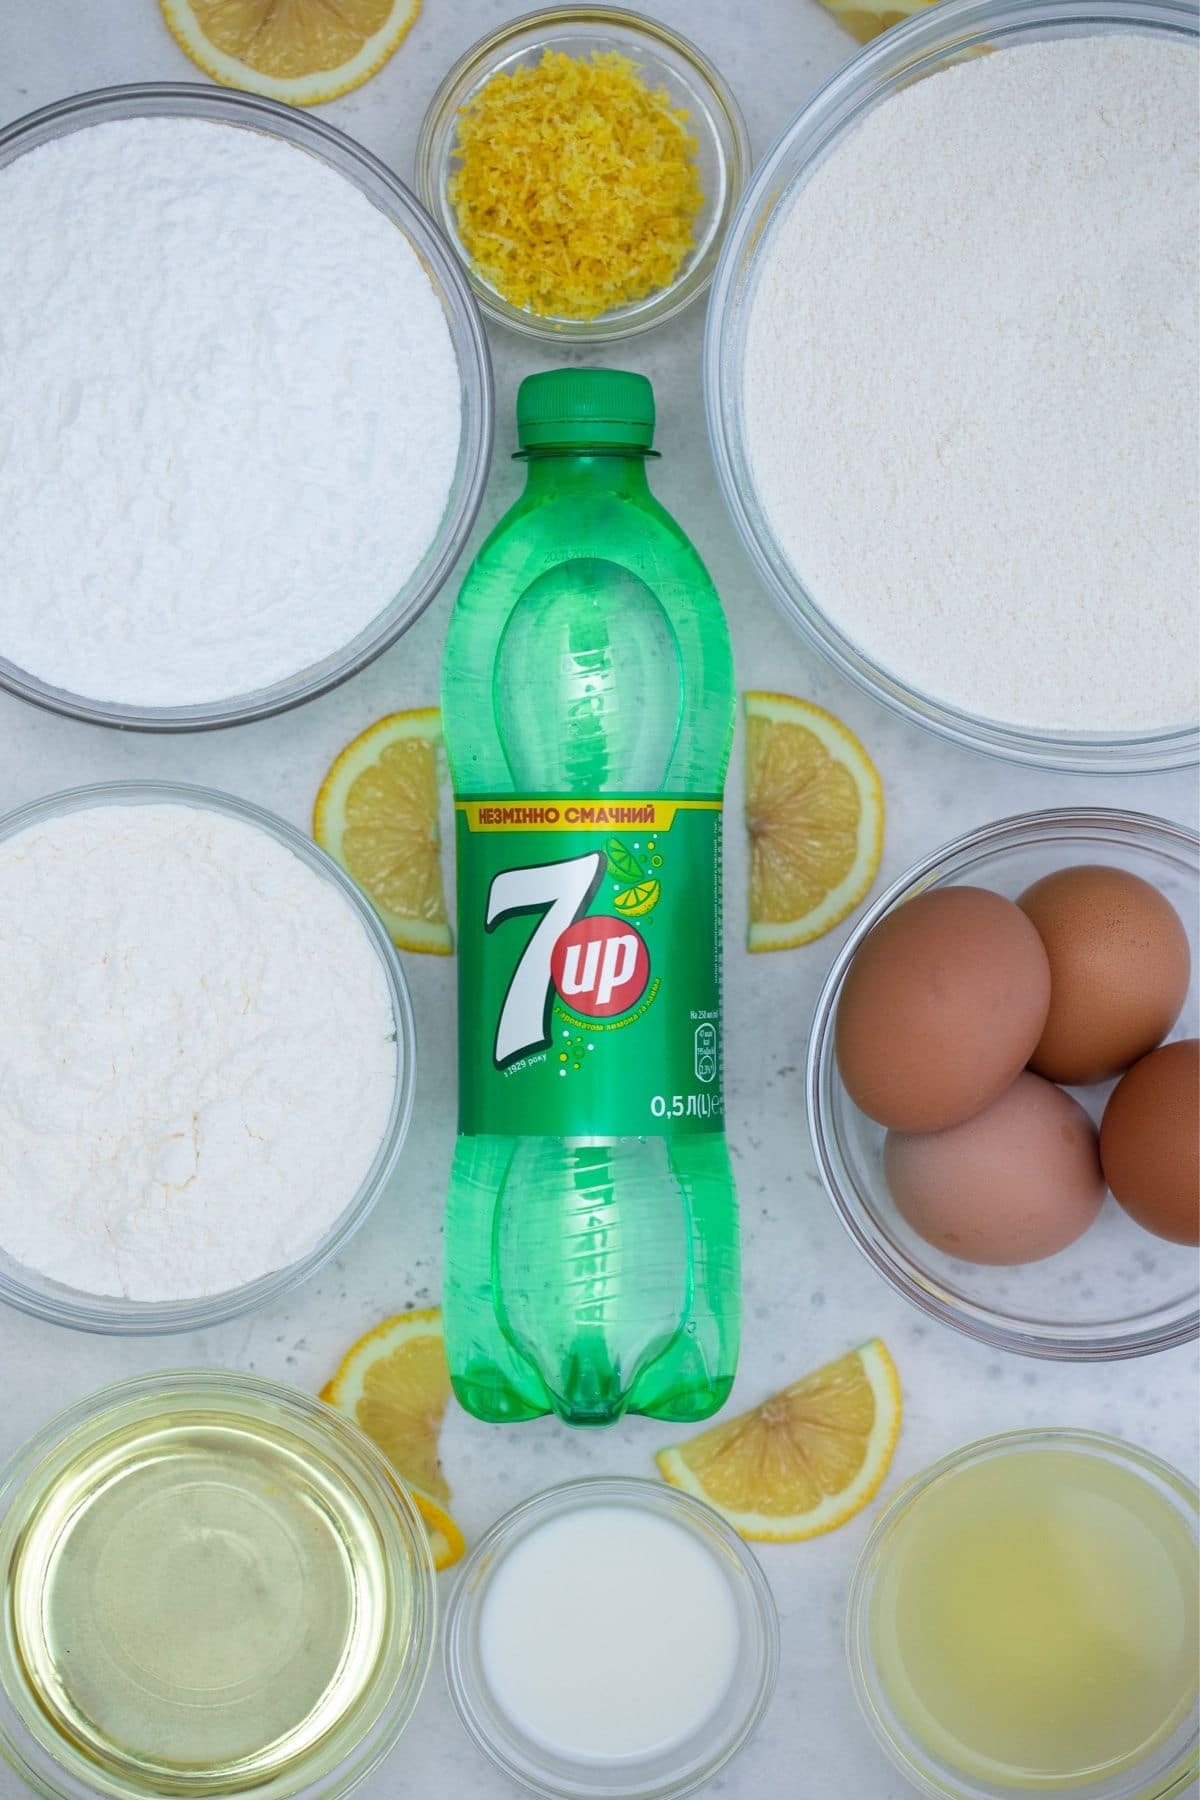 Ingredients for 7-Up cake on white table